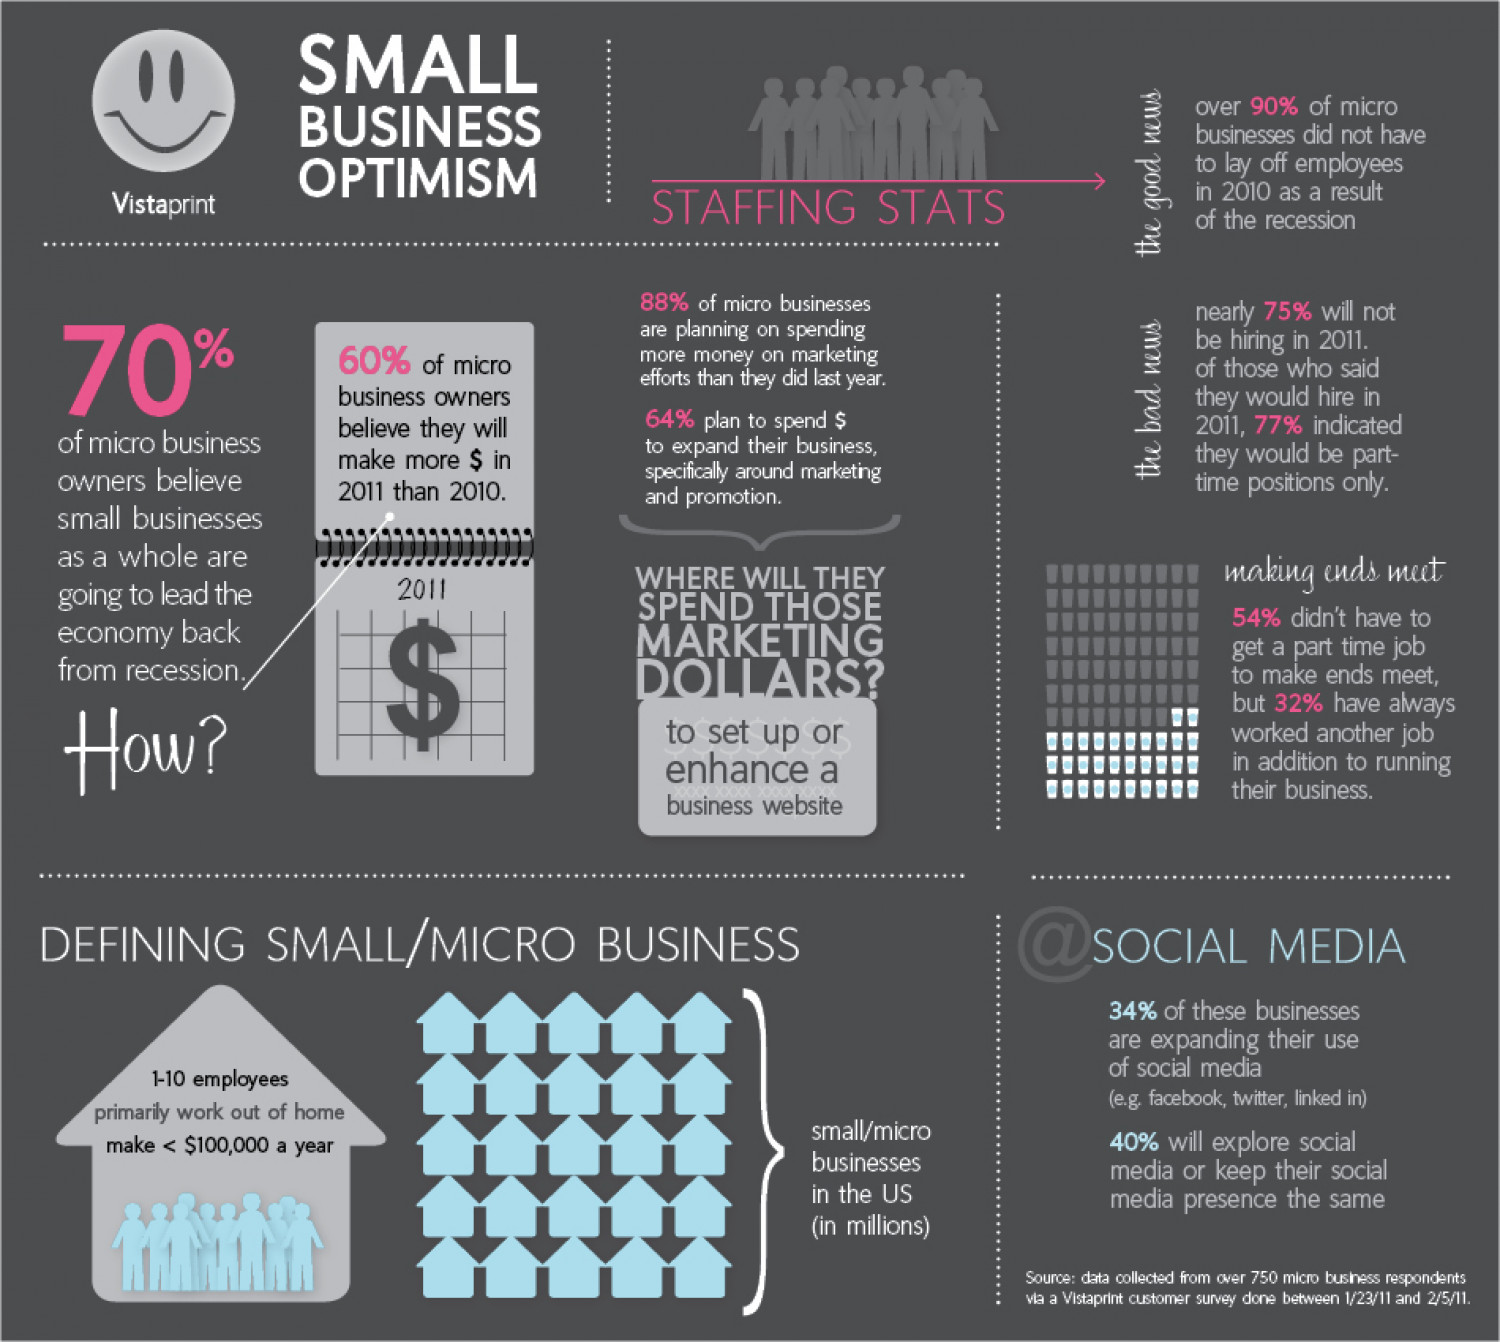 Small Business Optimism in 2011 Infographic